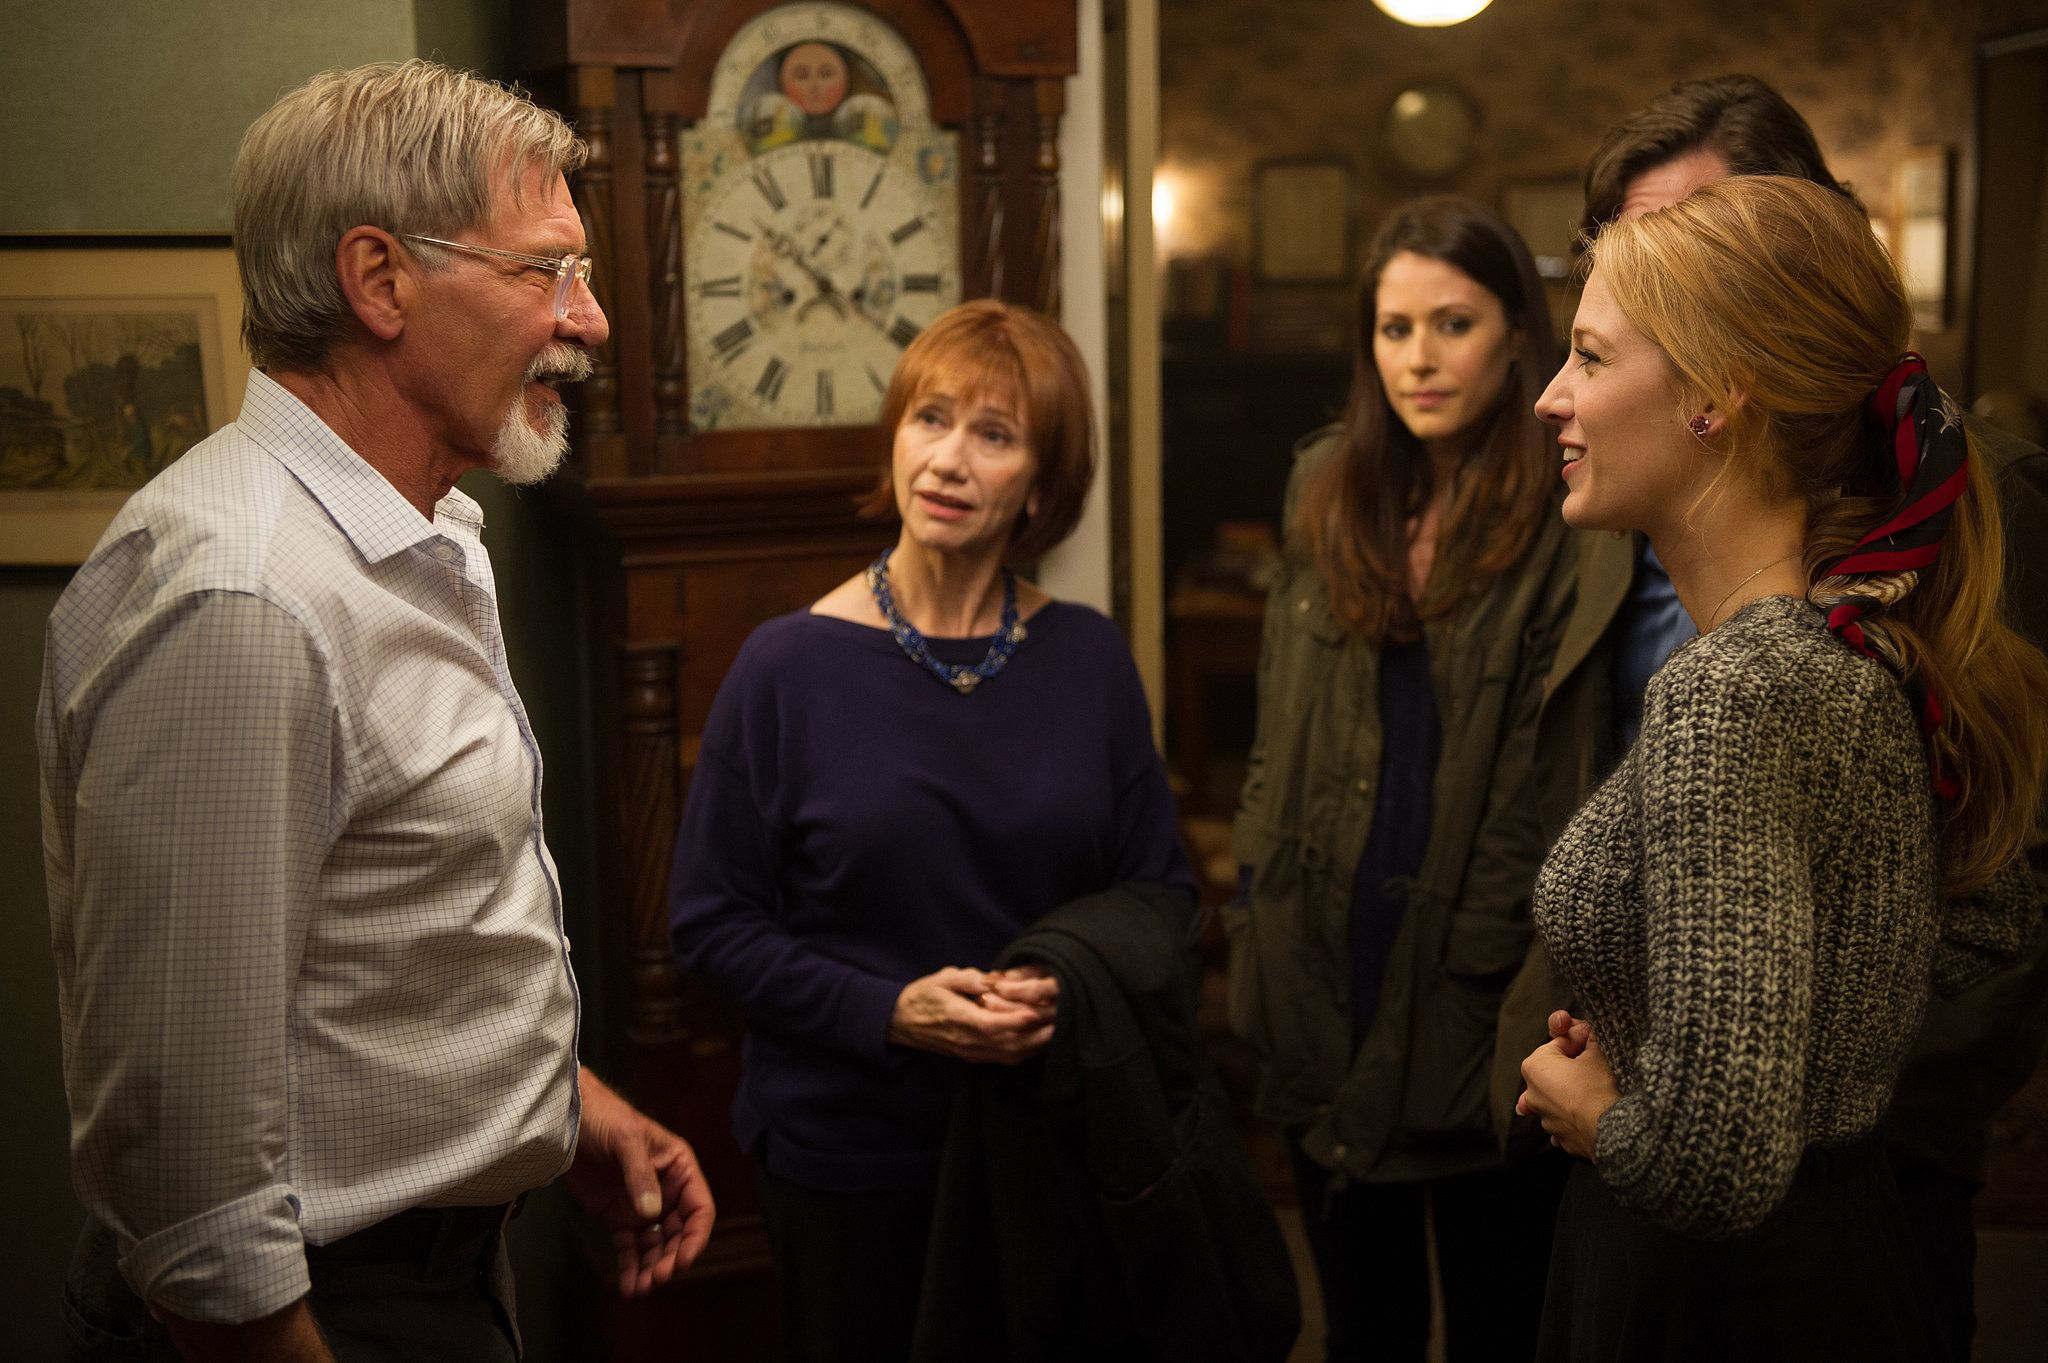 Blake Lively and Harrison Ford in 'The Age of Adaline'